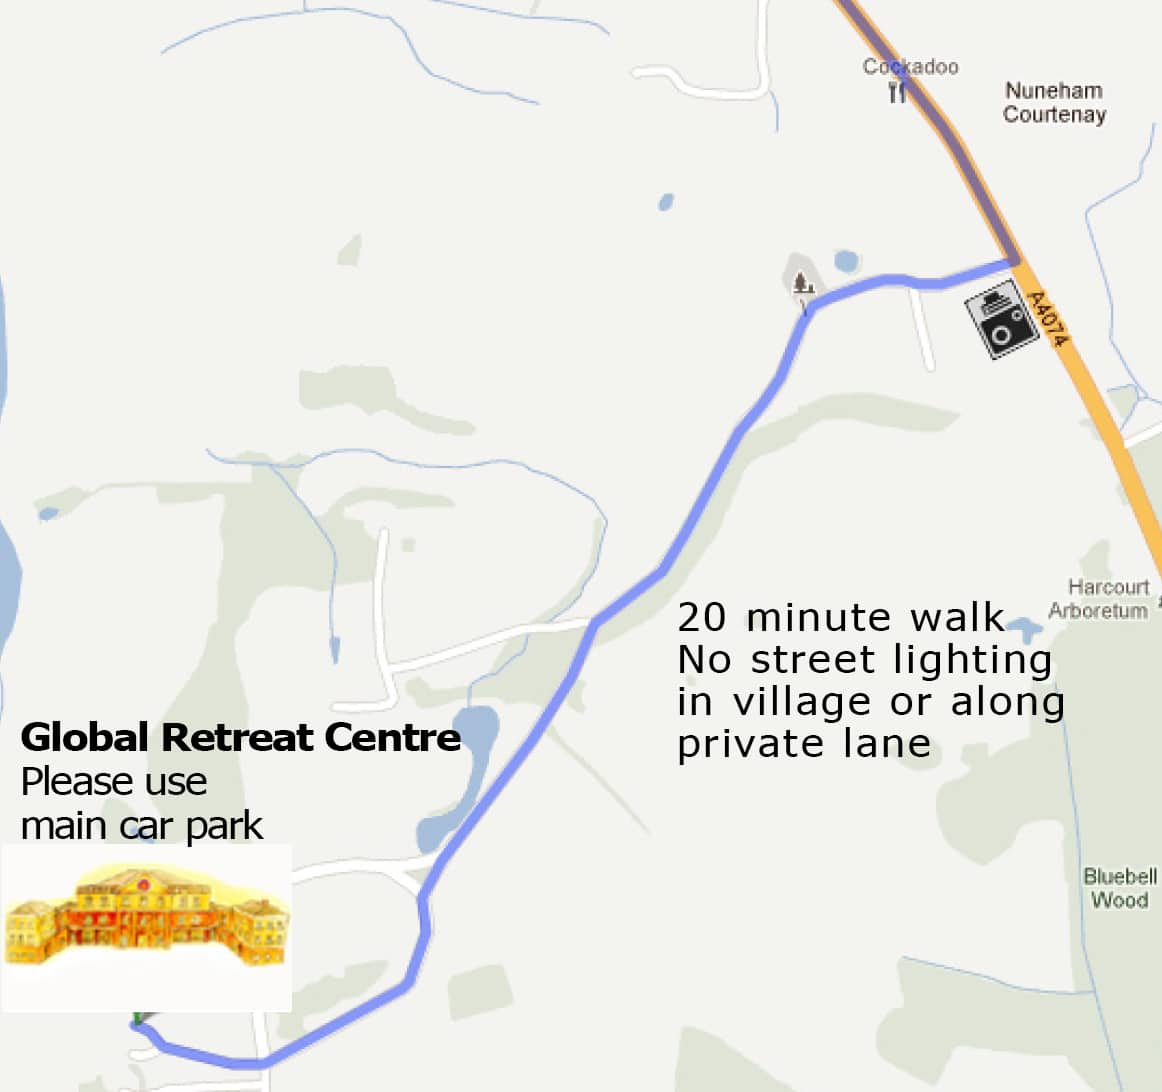 directions to global retreat centre from nuneham pic